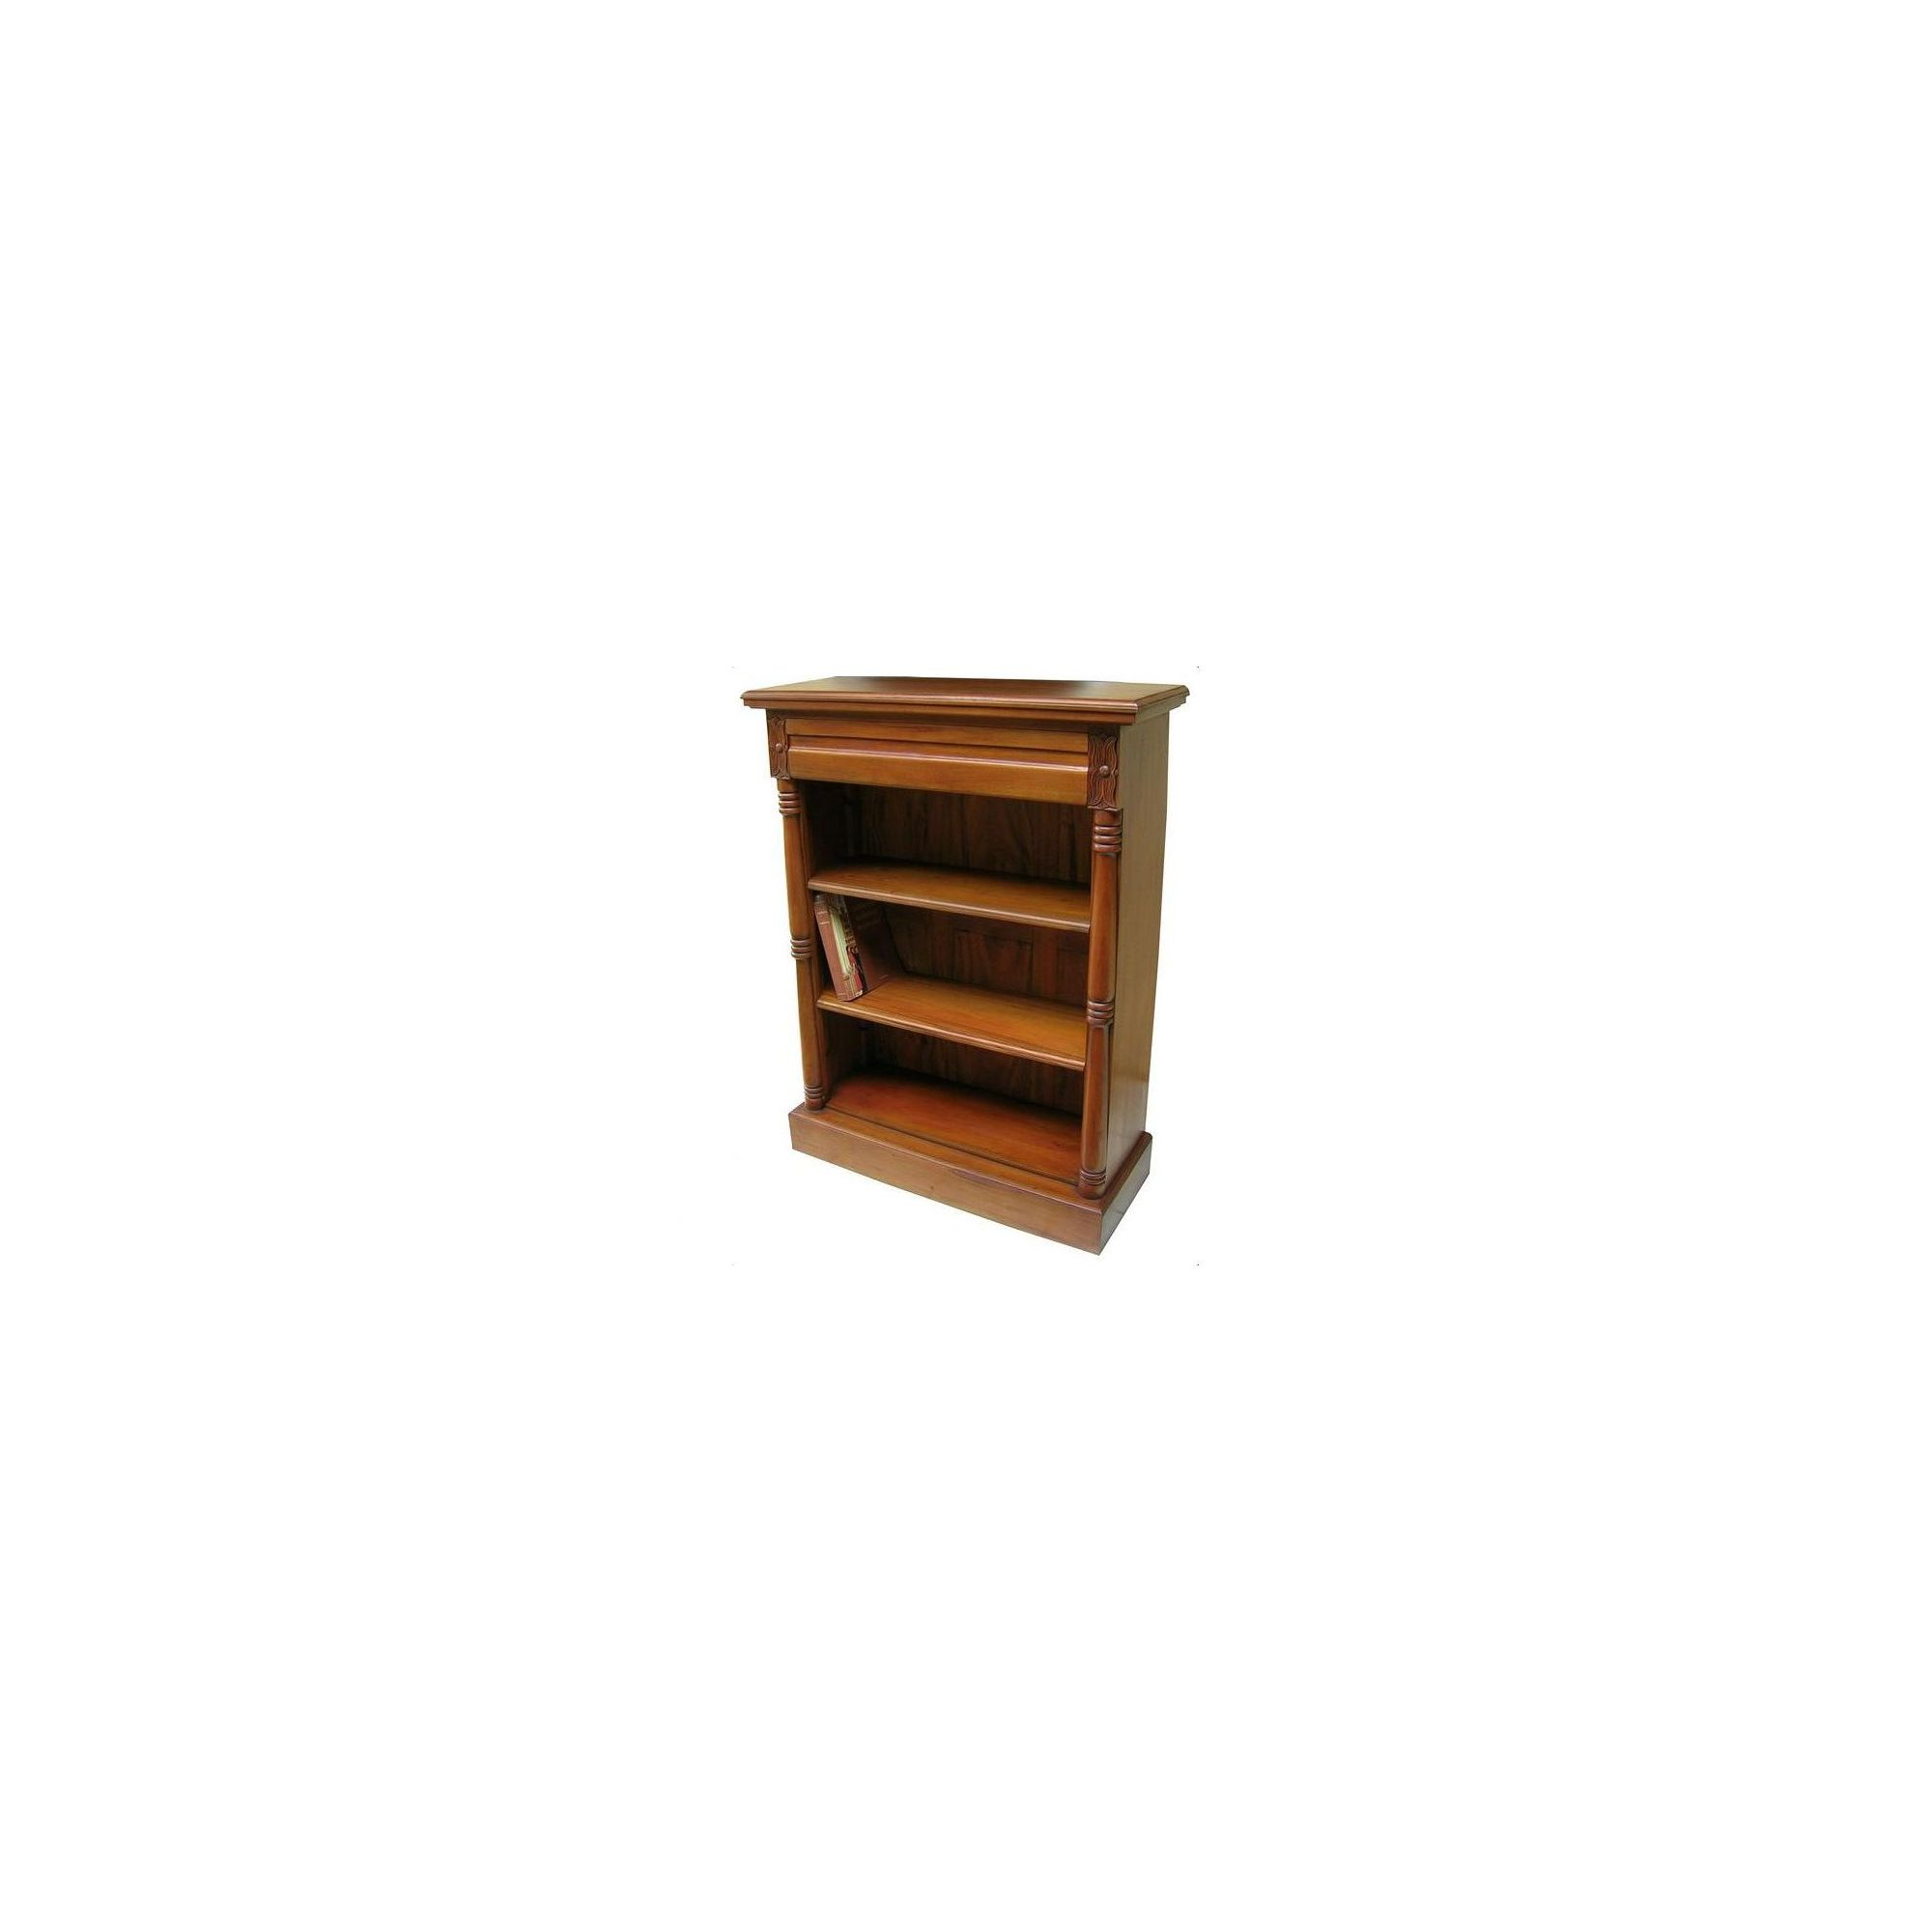 Lock stock and barrel Mahogany Victorian Bookcase in Mahogany at Tesco Direct